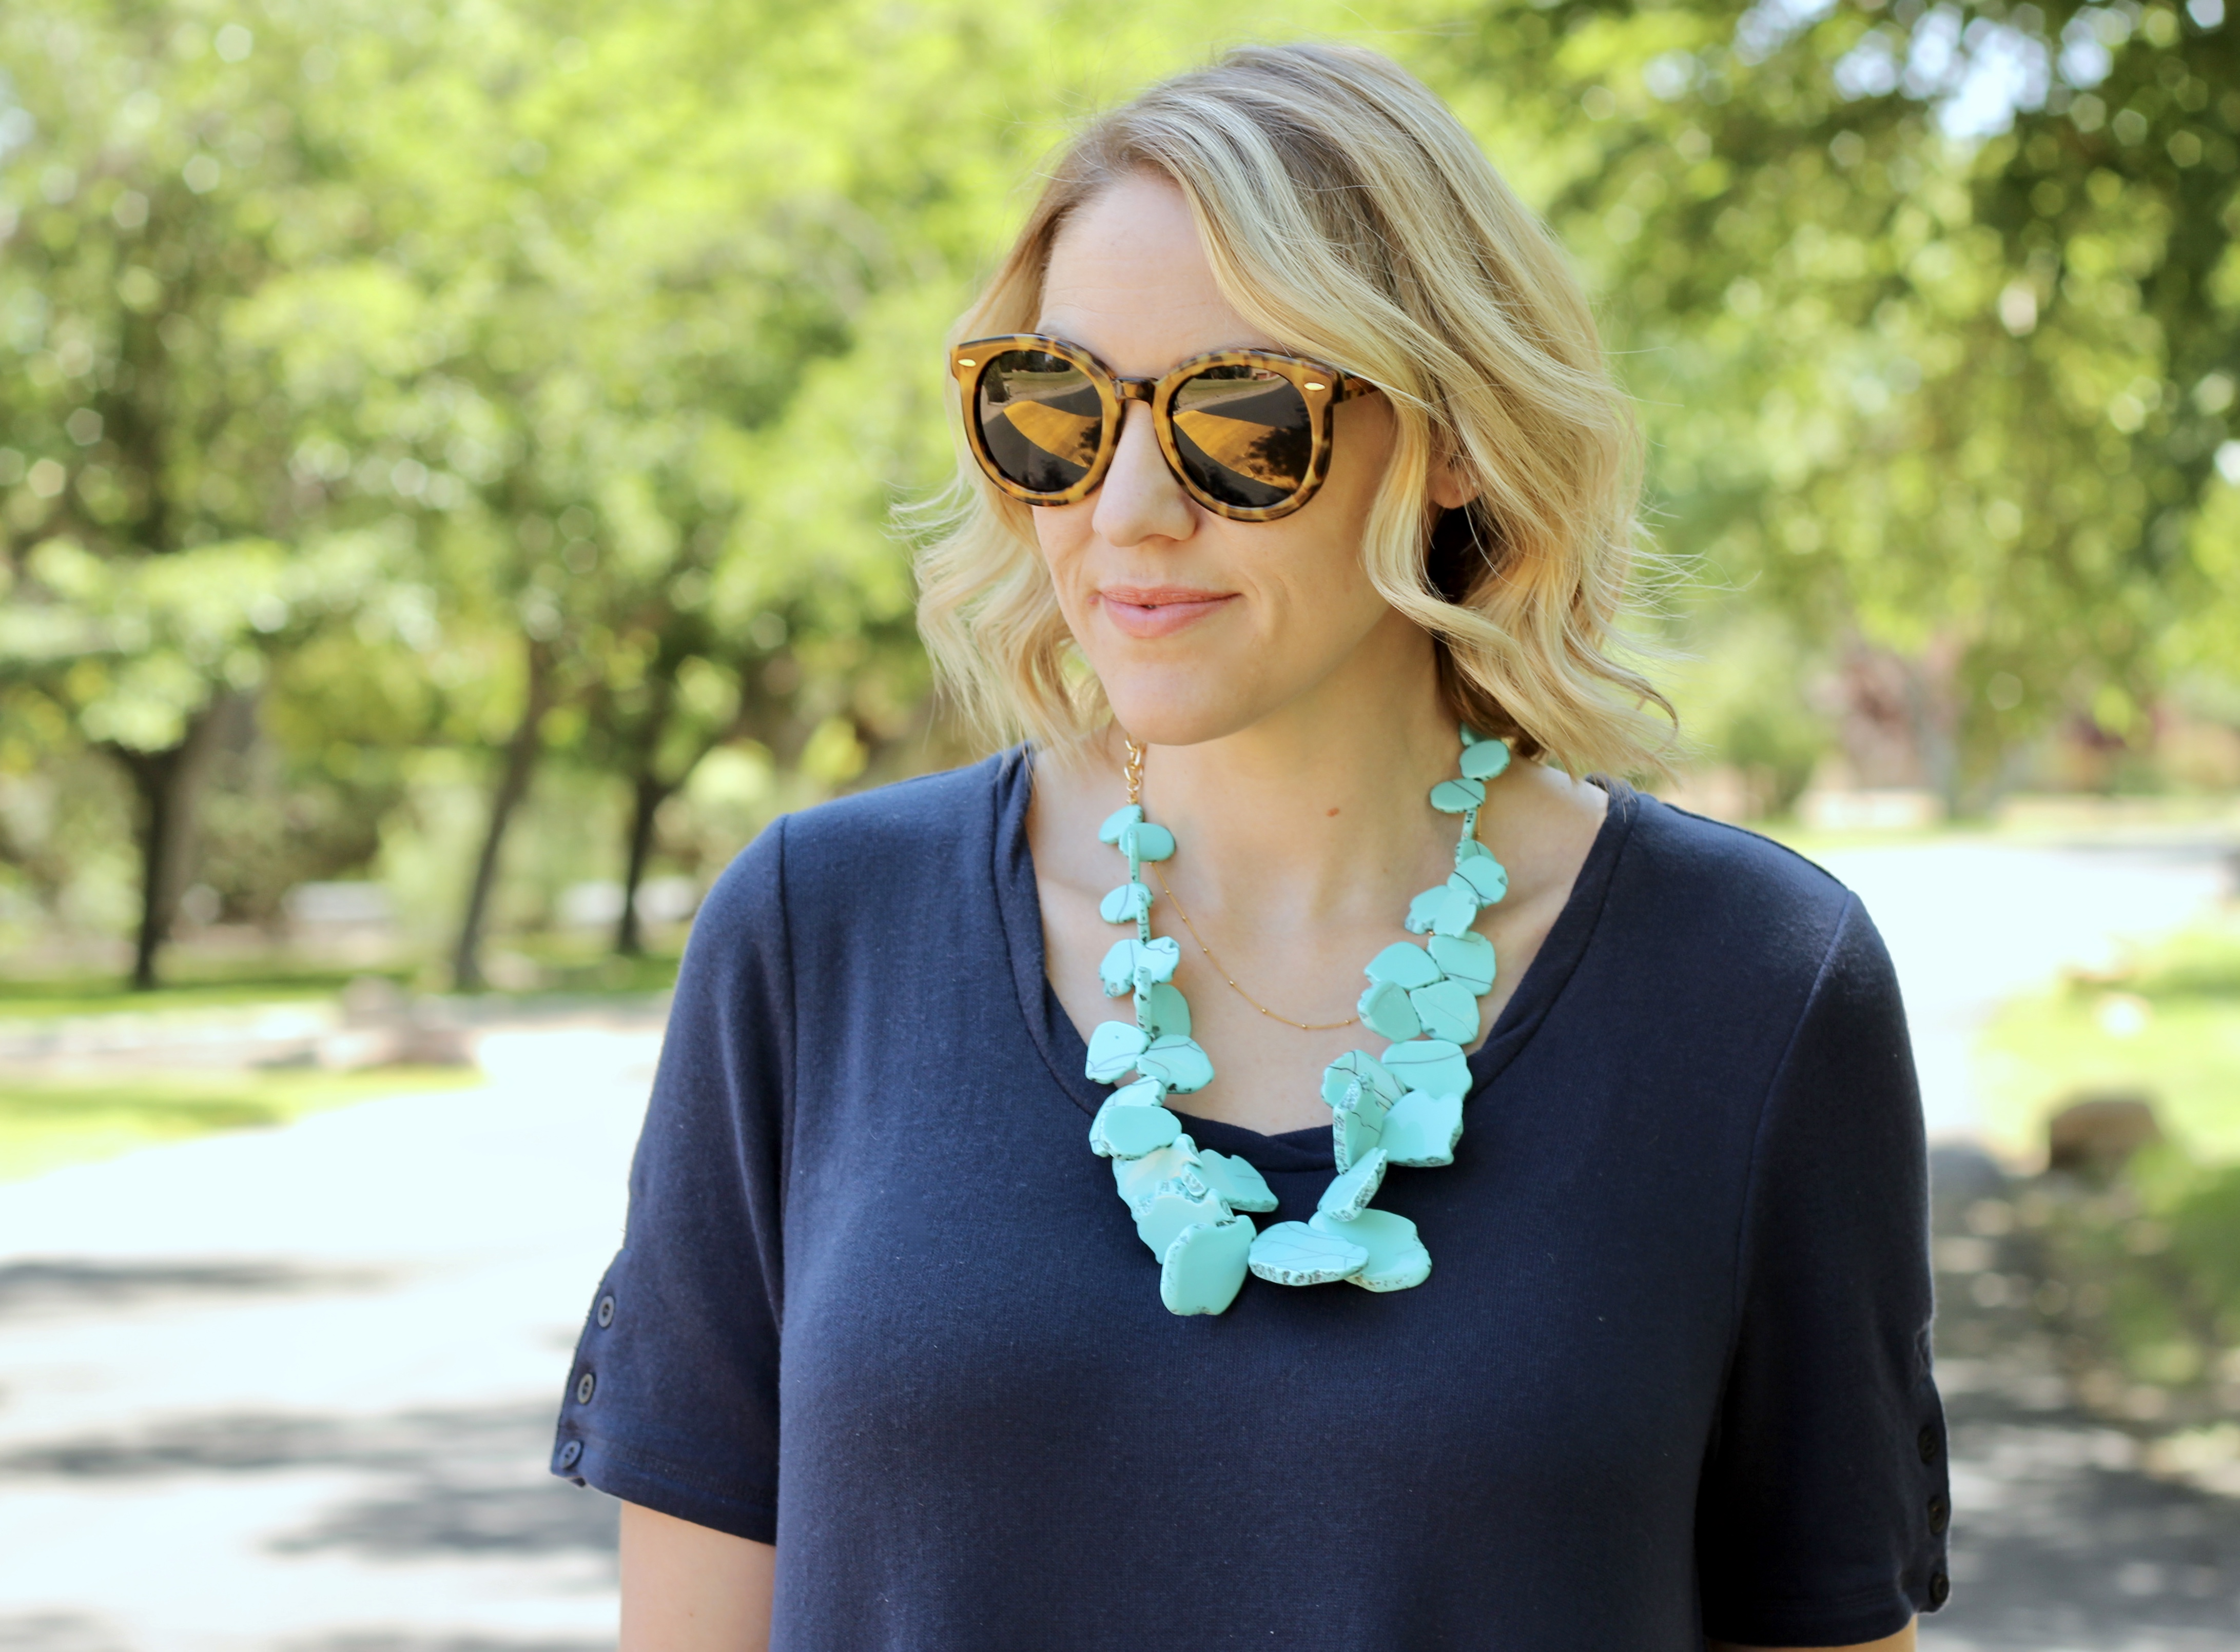 navy dress and a turquoise statement necklace